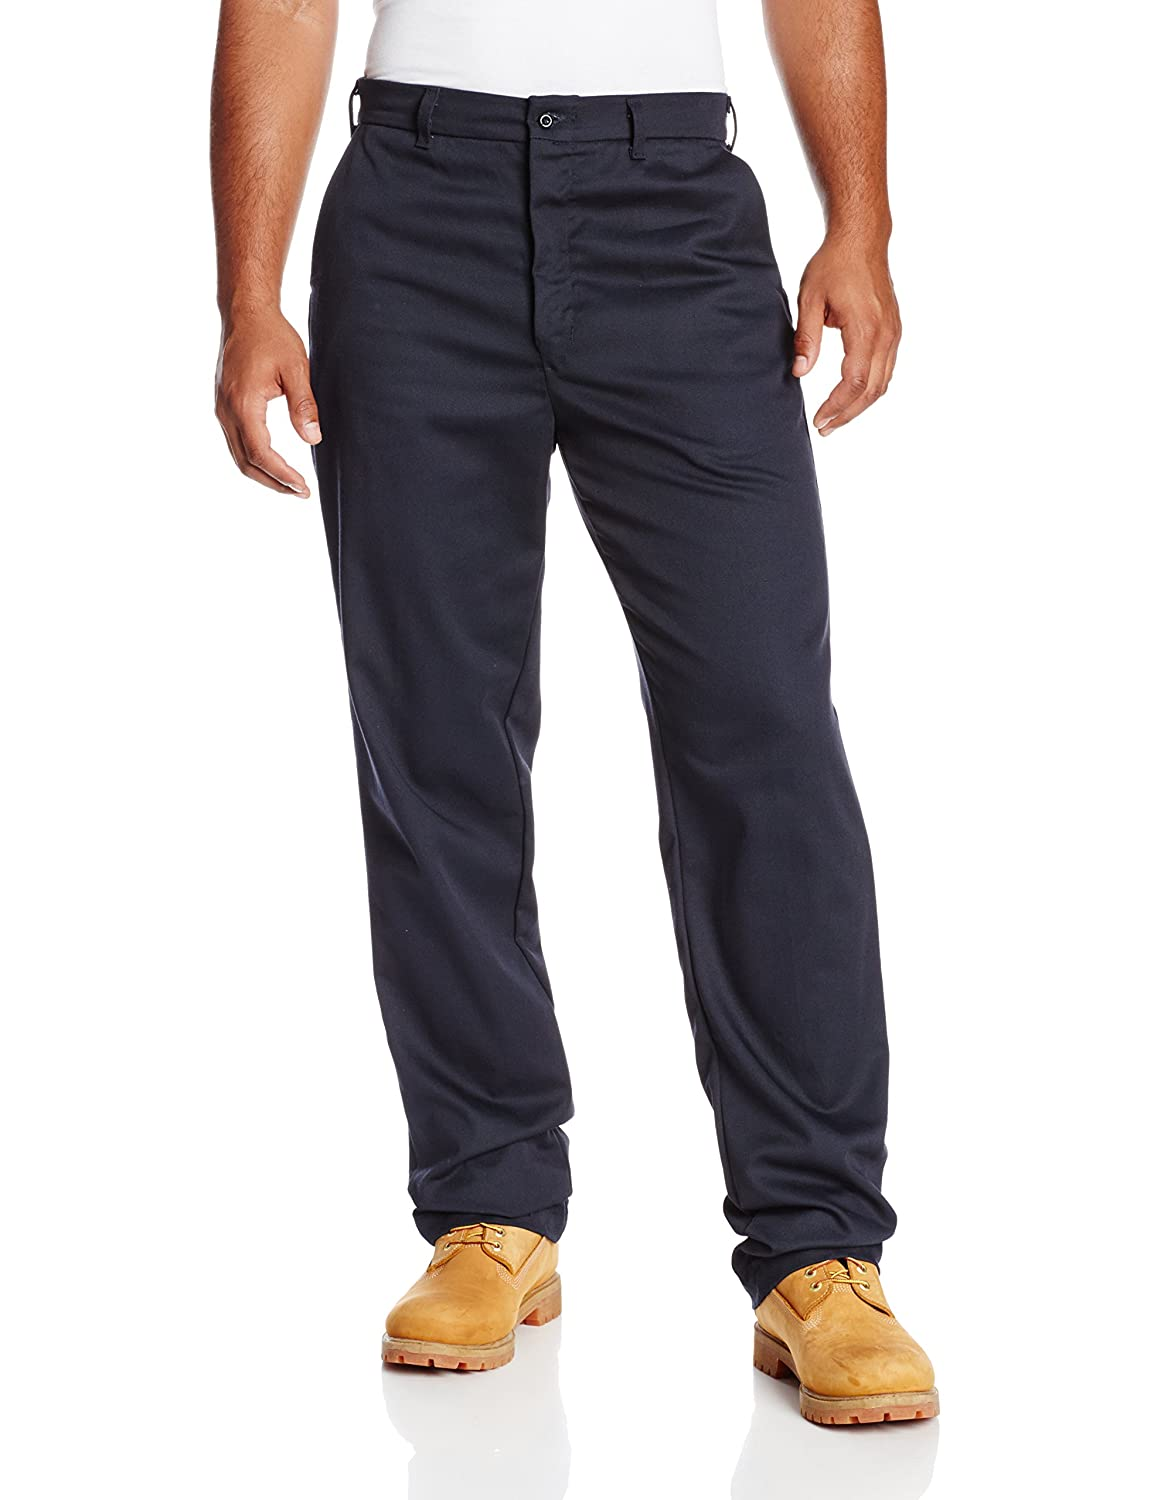 Bulwark Men's Flame Resistant 9 Oz Twill Cotton Work Pant